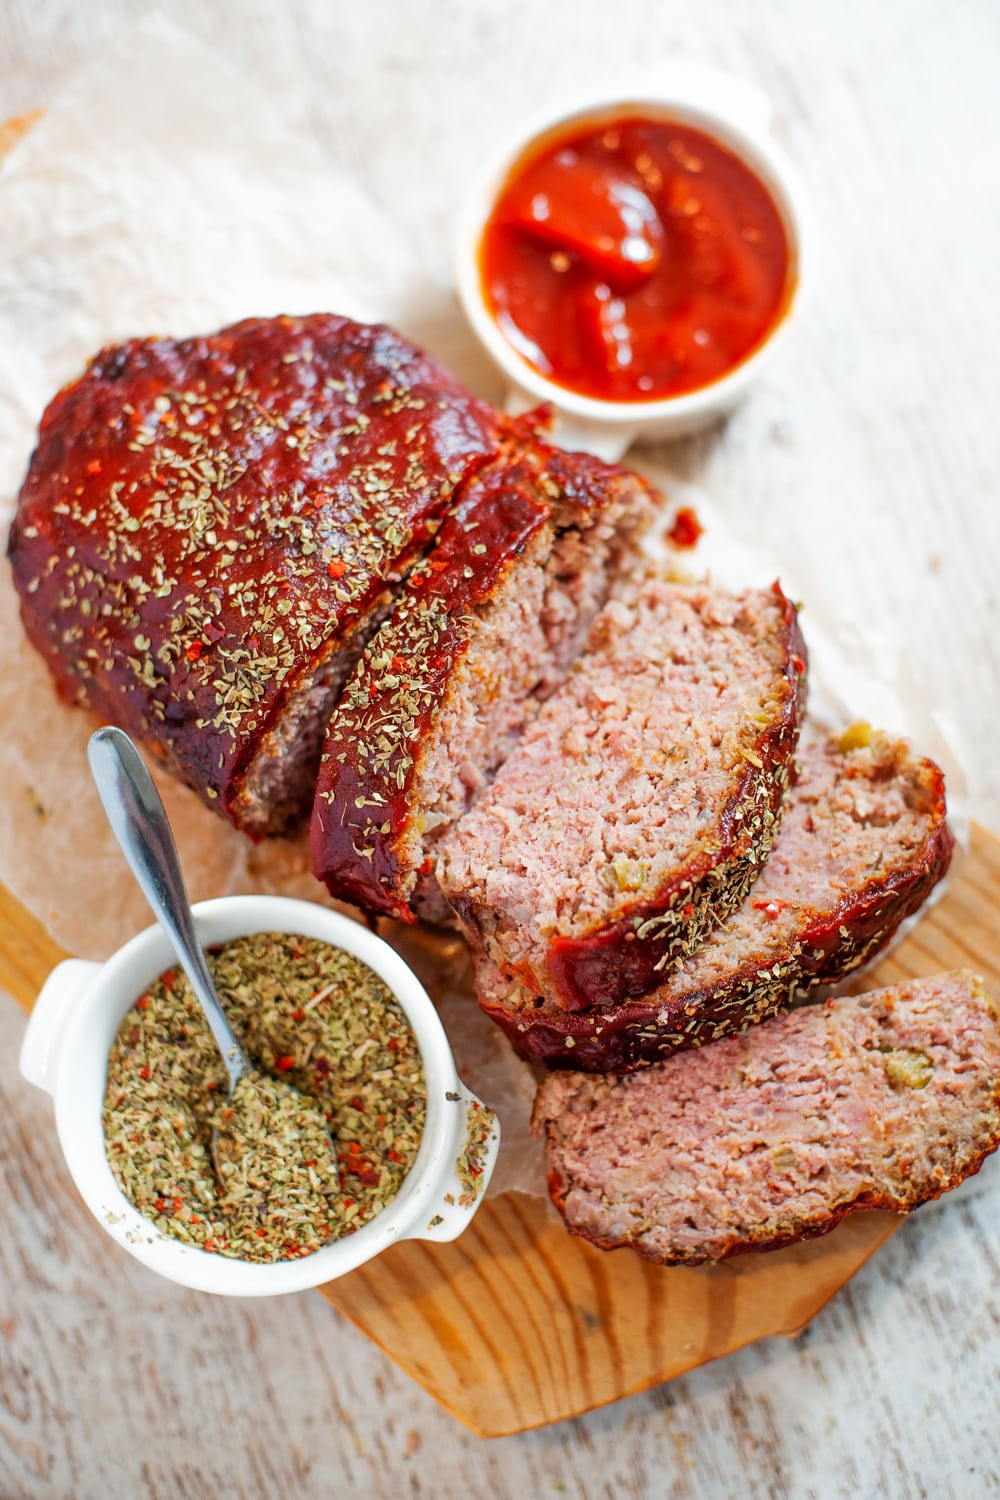 Sliced meatloaf on a cutting board with spices and ketchup next to it.